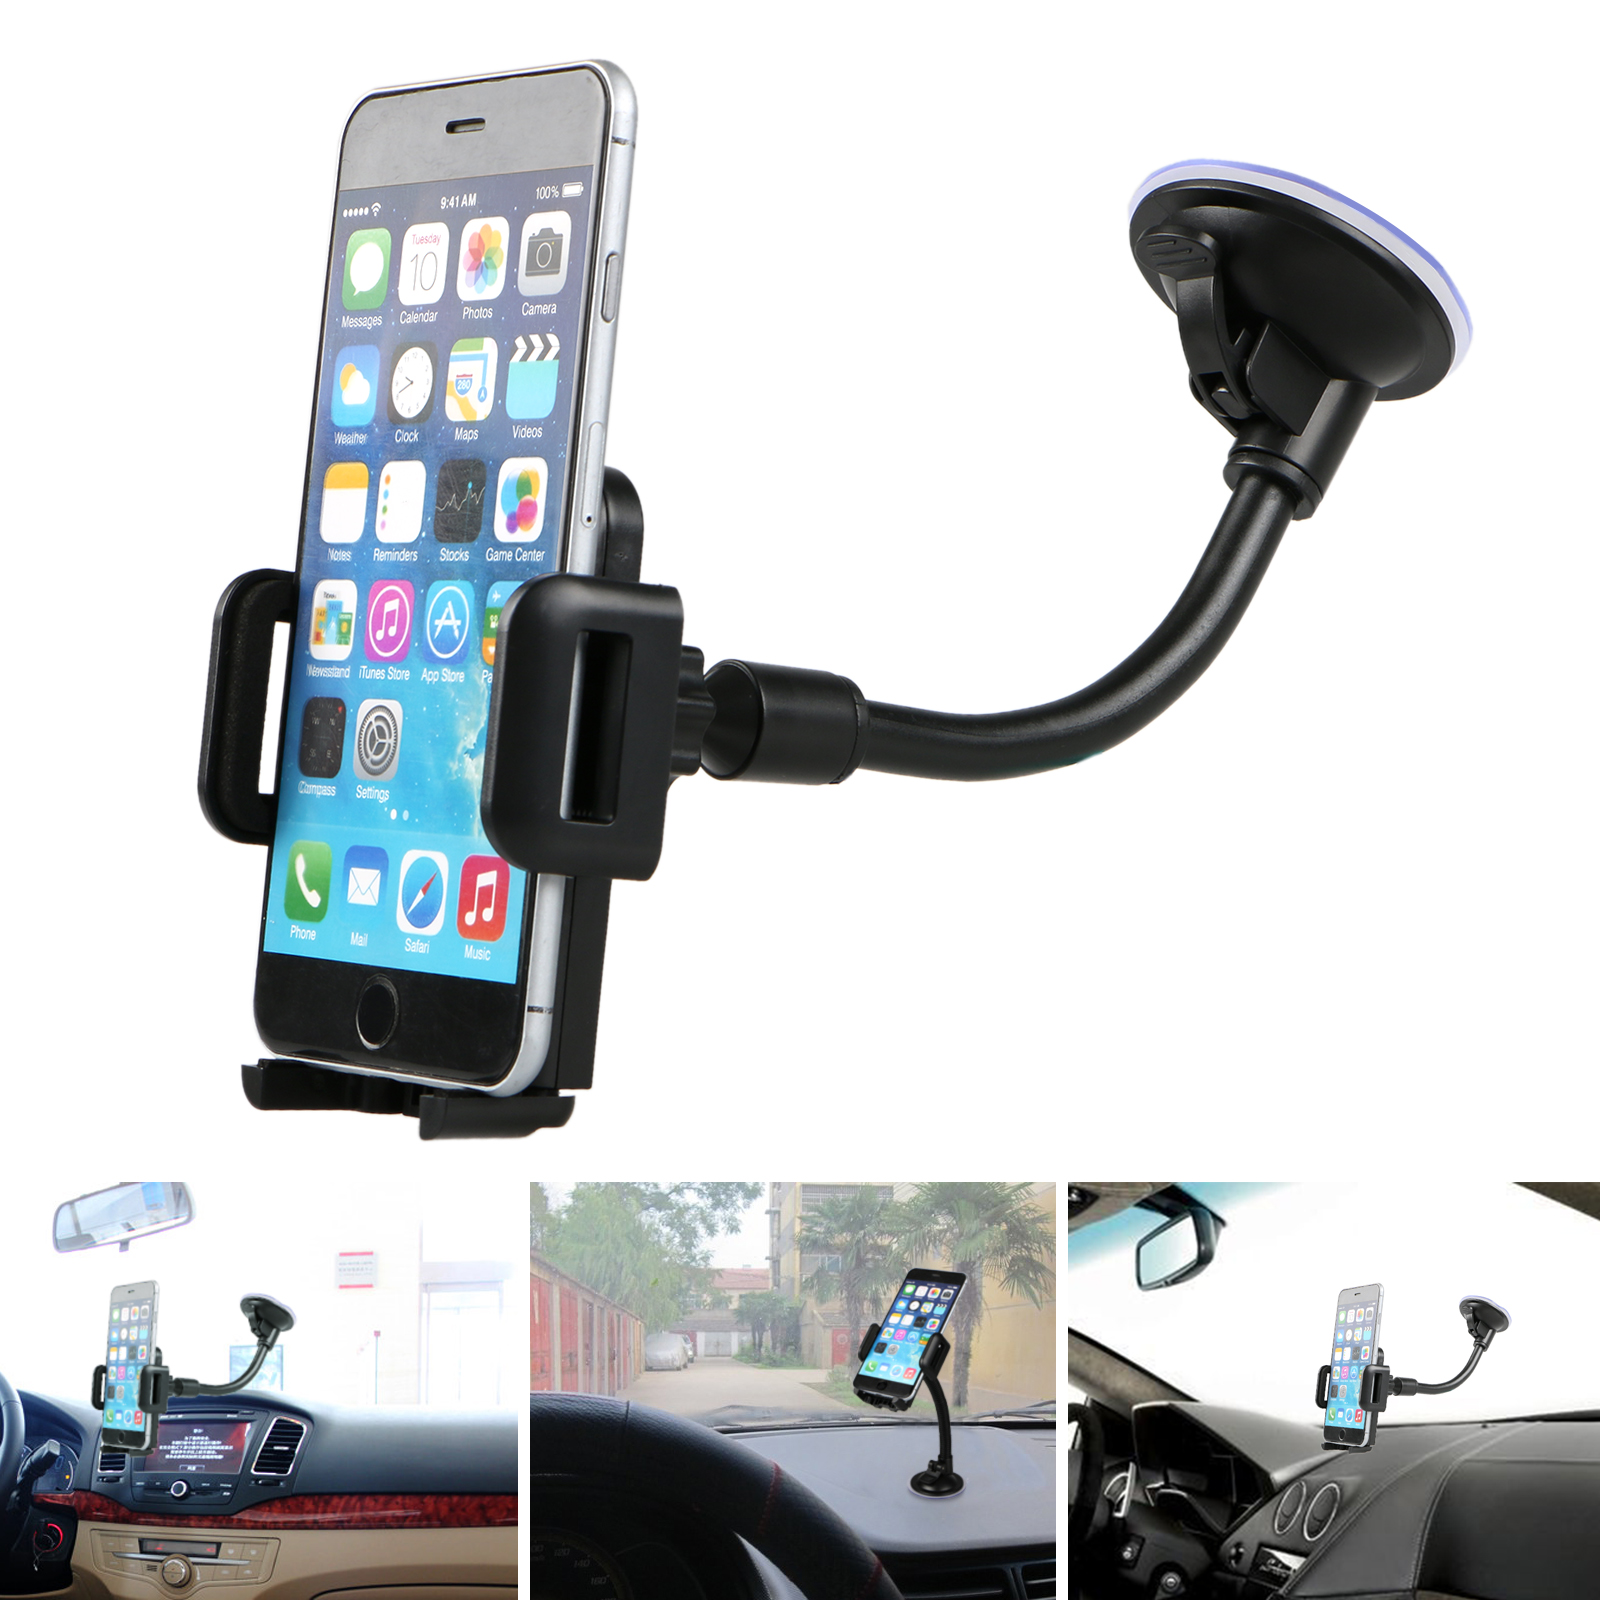 Strong Sticky Gel Black Universal Compatible with iPhone Xs Max XR X 6S 7 8 Plus Galaxy Note 9 S9 GPS etc. Cell Phone Holder for Car Dashboard 360 Degree Rotatable Car Phone Mount Cradle